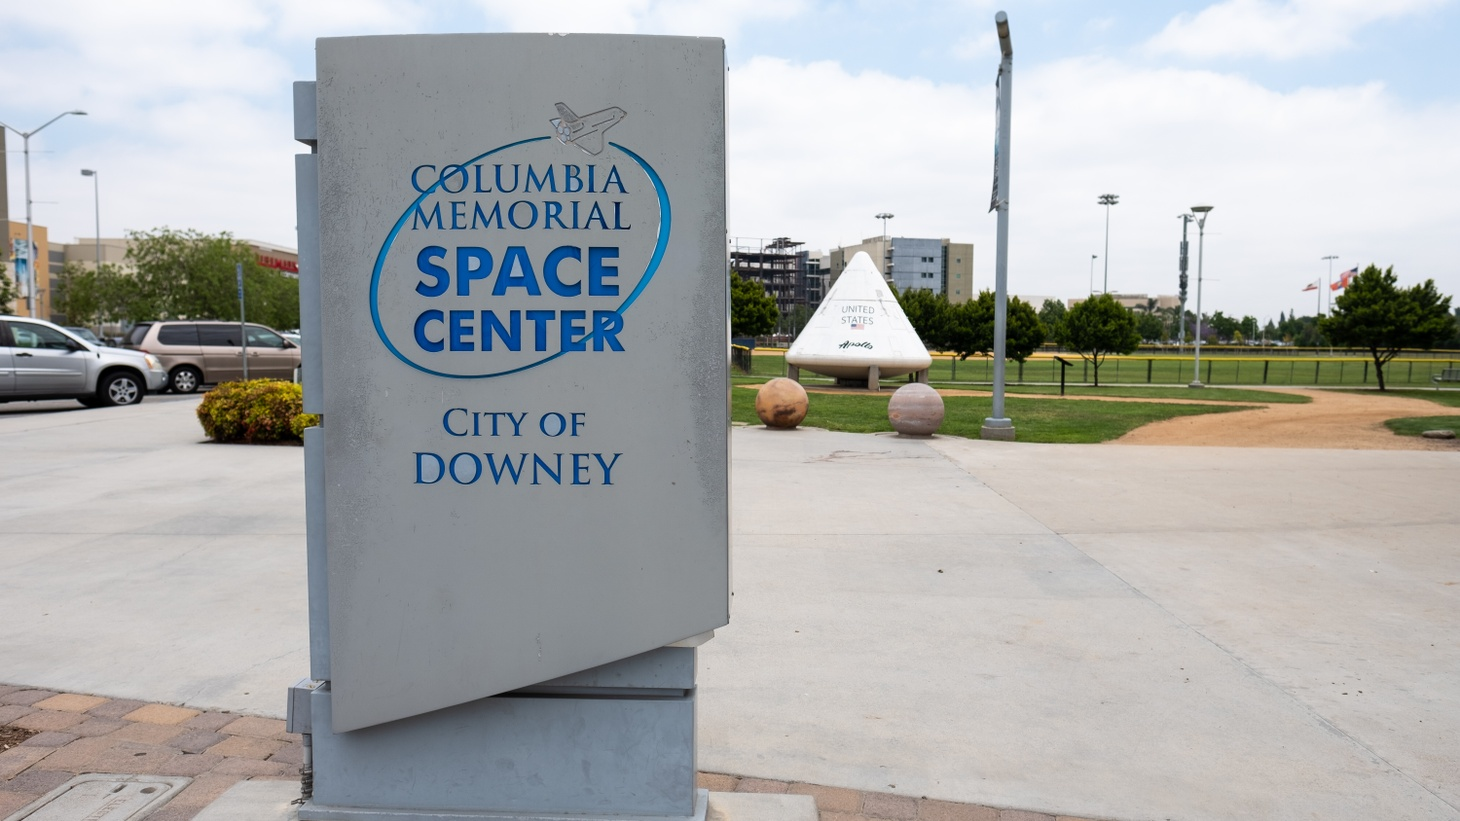 The exterior of the Columbia Memorial Space Center.